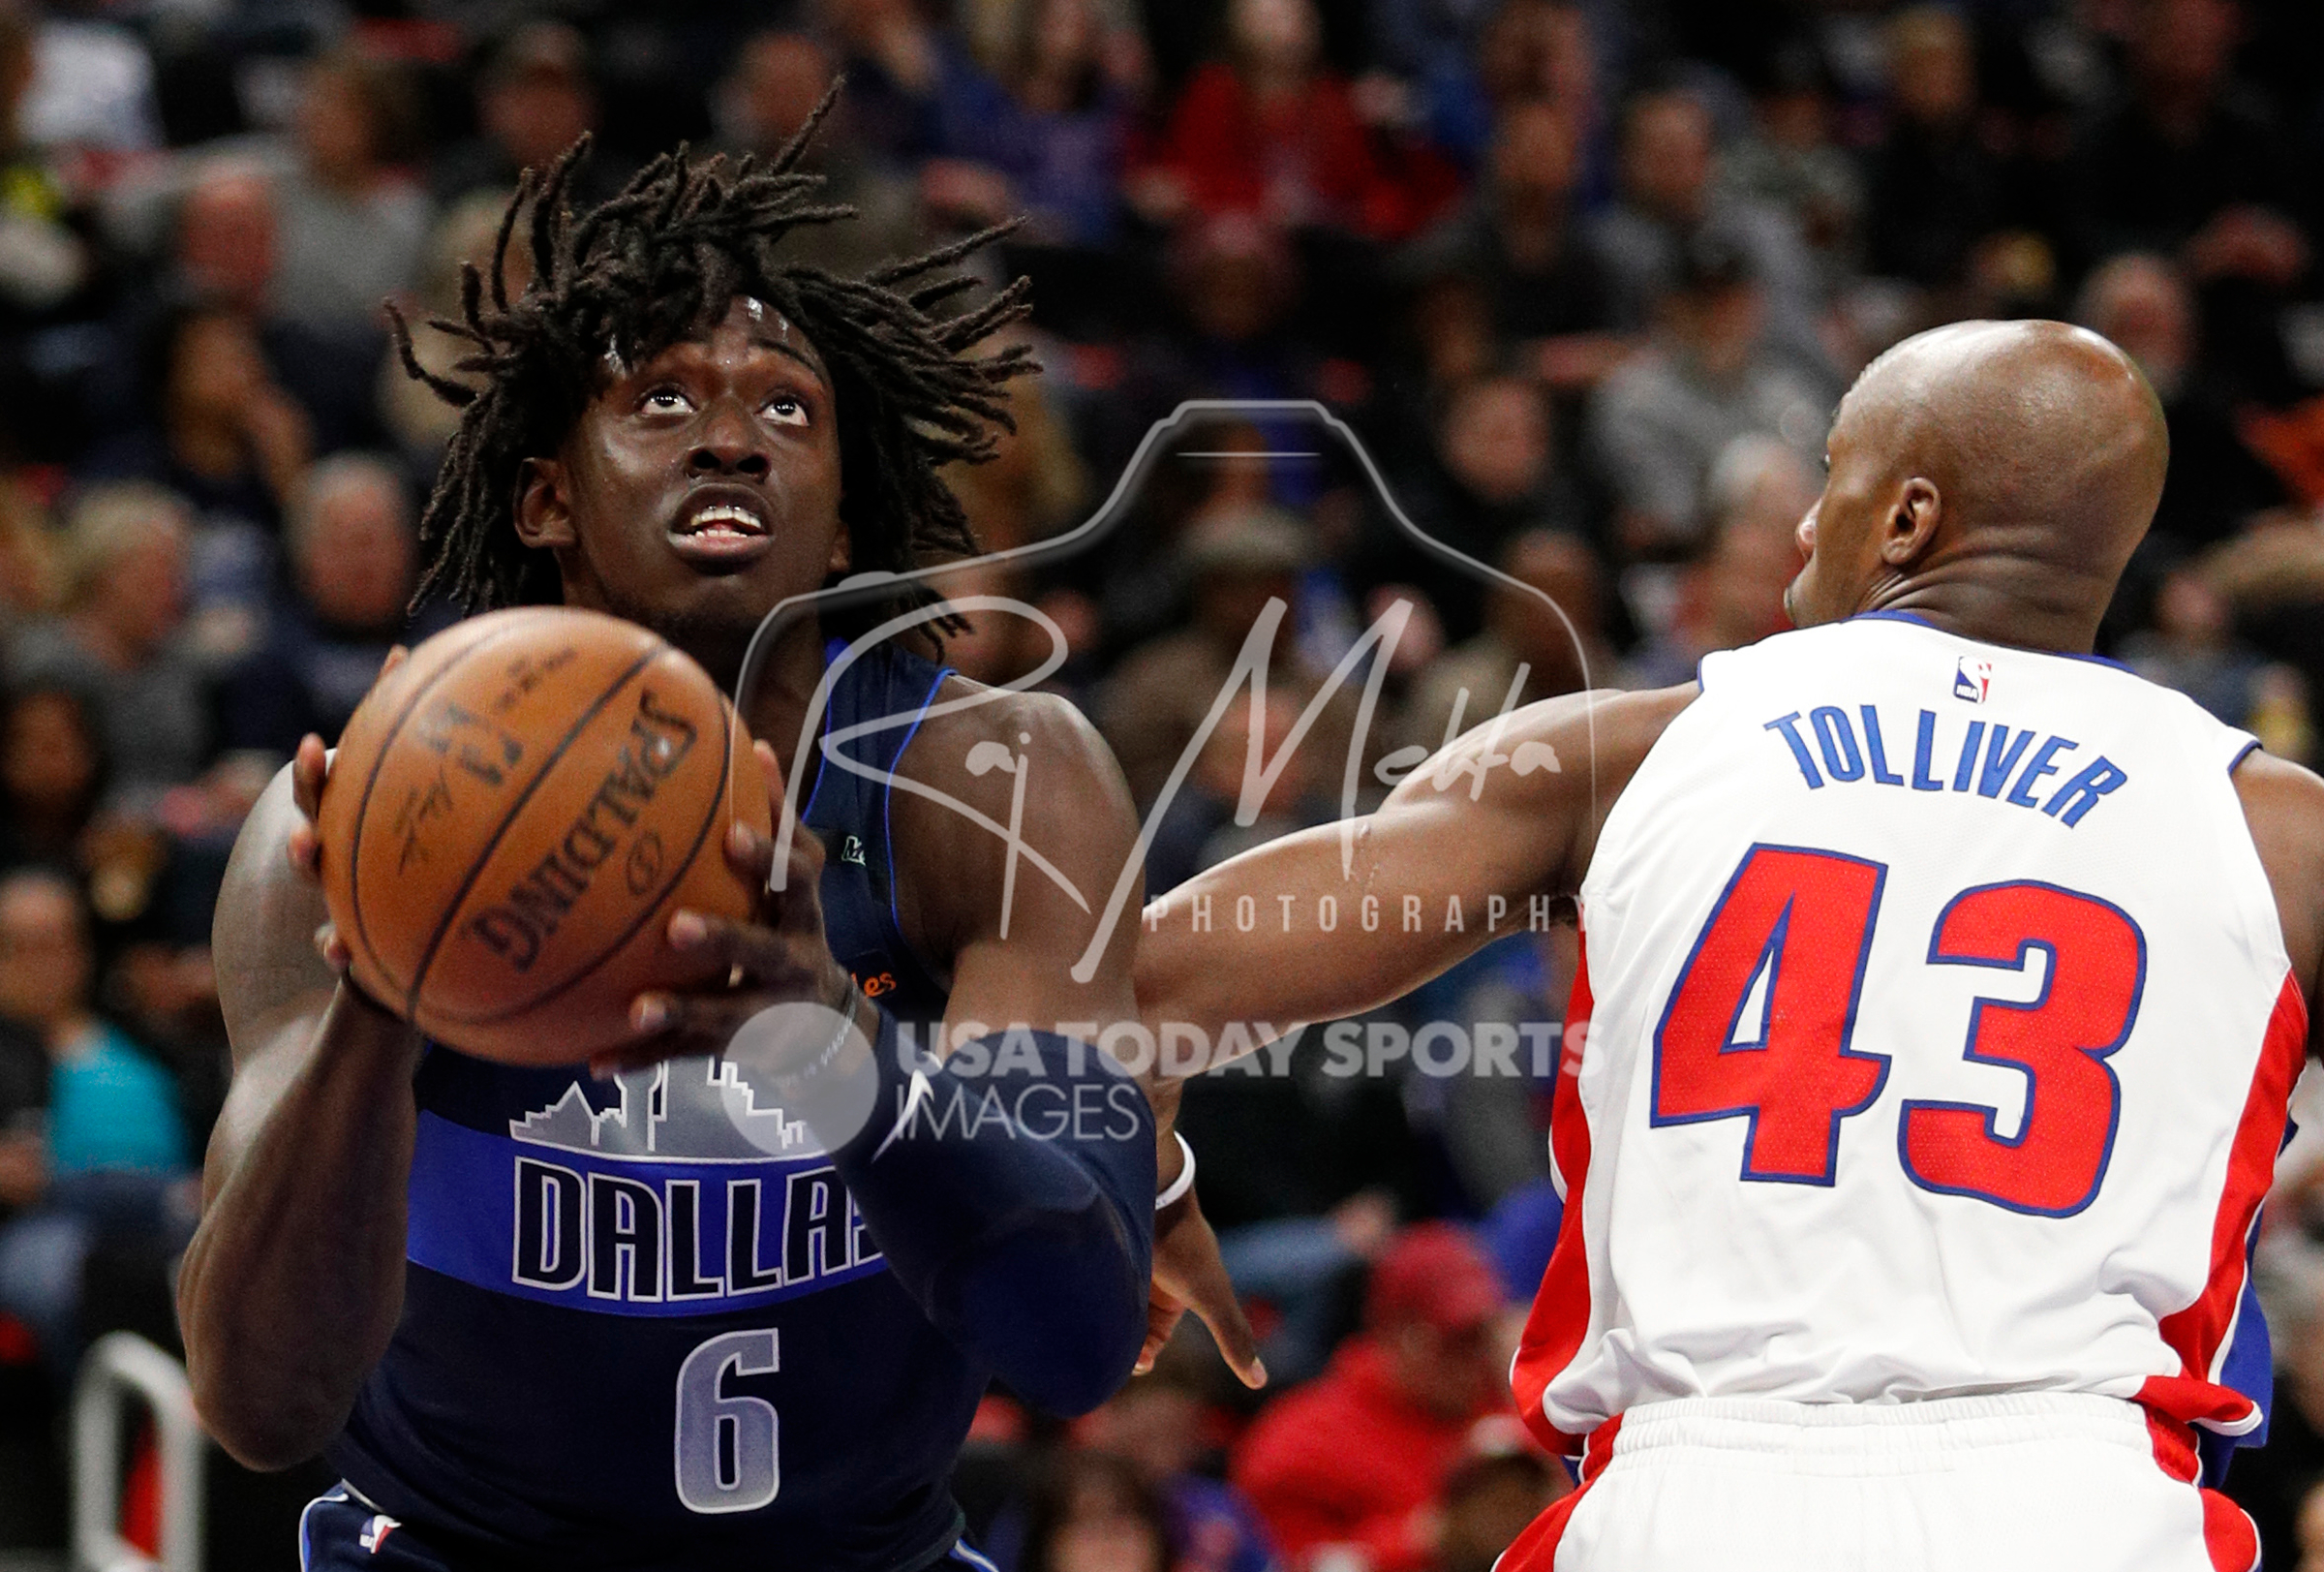 Apr 6, 2018; Detroit, MI, USA; Dallas Mavericks forward Johnathan Motley (6) goes up for a shot against Detroit Pistons forward Anthony Tolliver (43) during the first quarter at Little Caesars Arena. Mandatory Credit: Raj Mehta-USA TODAY Sports